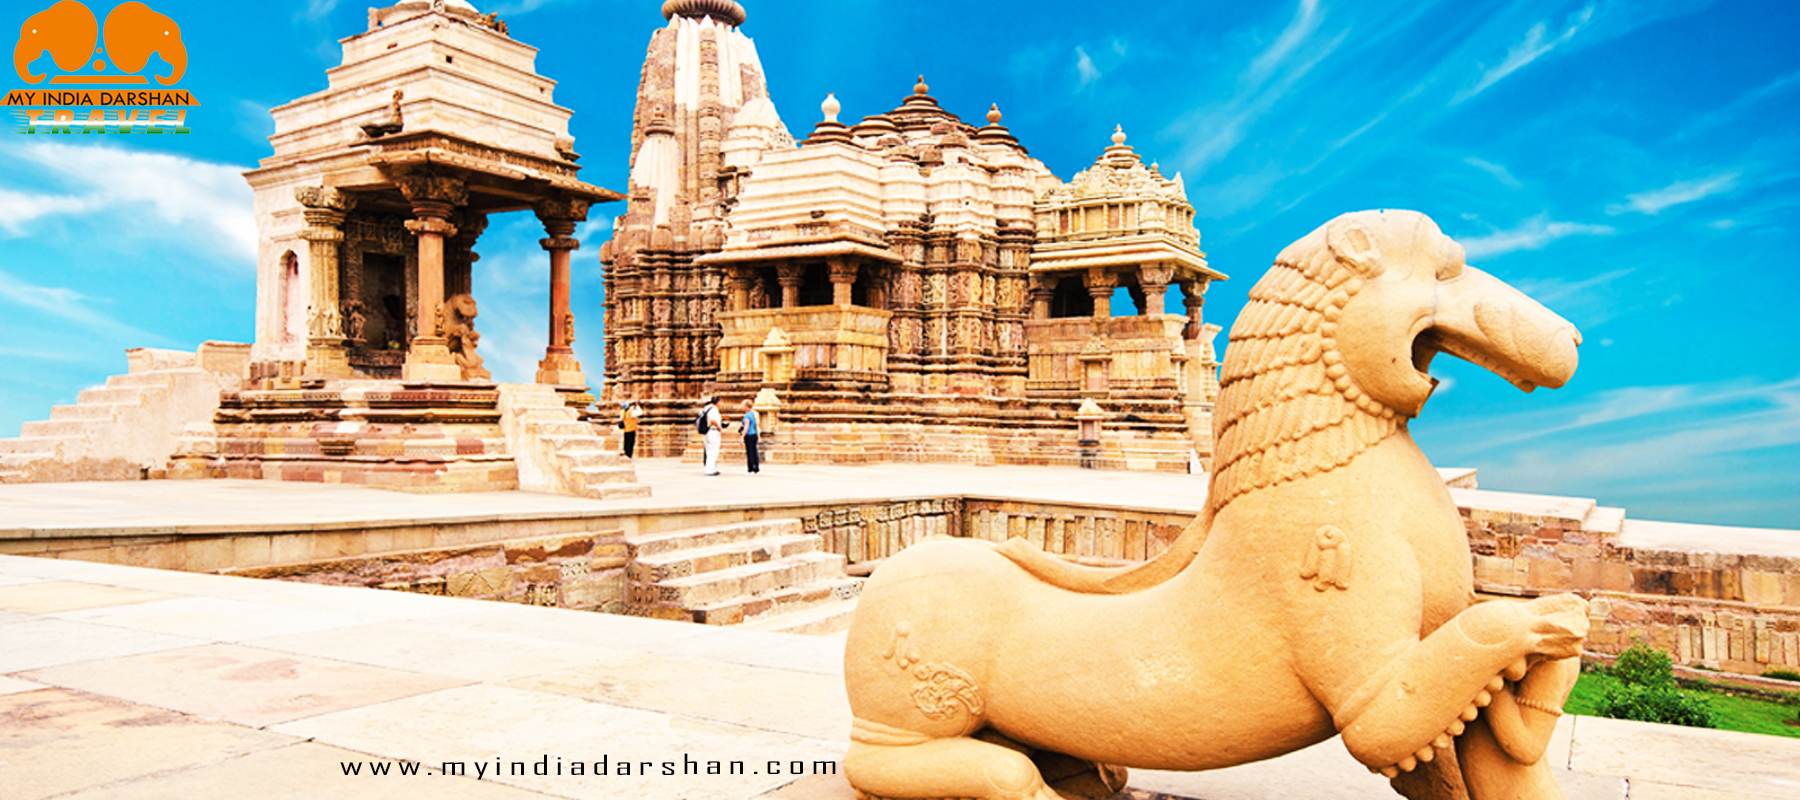 -khajuraho tour2 | MY INDIA DARSHAN